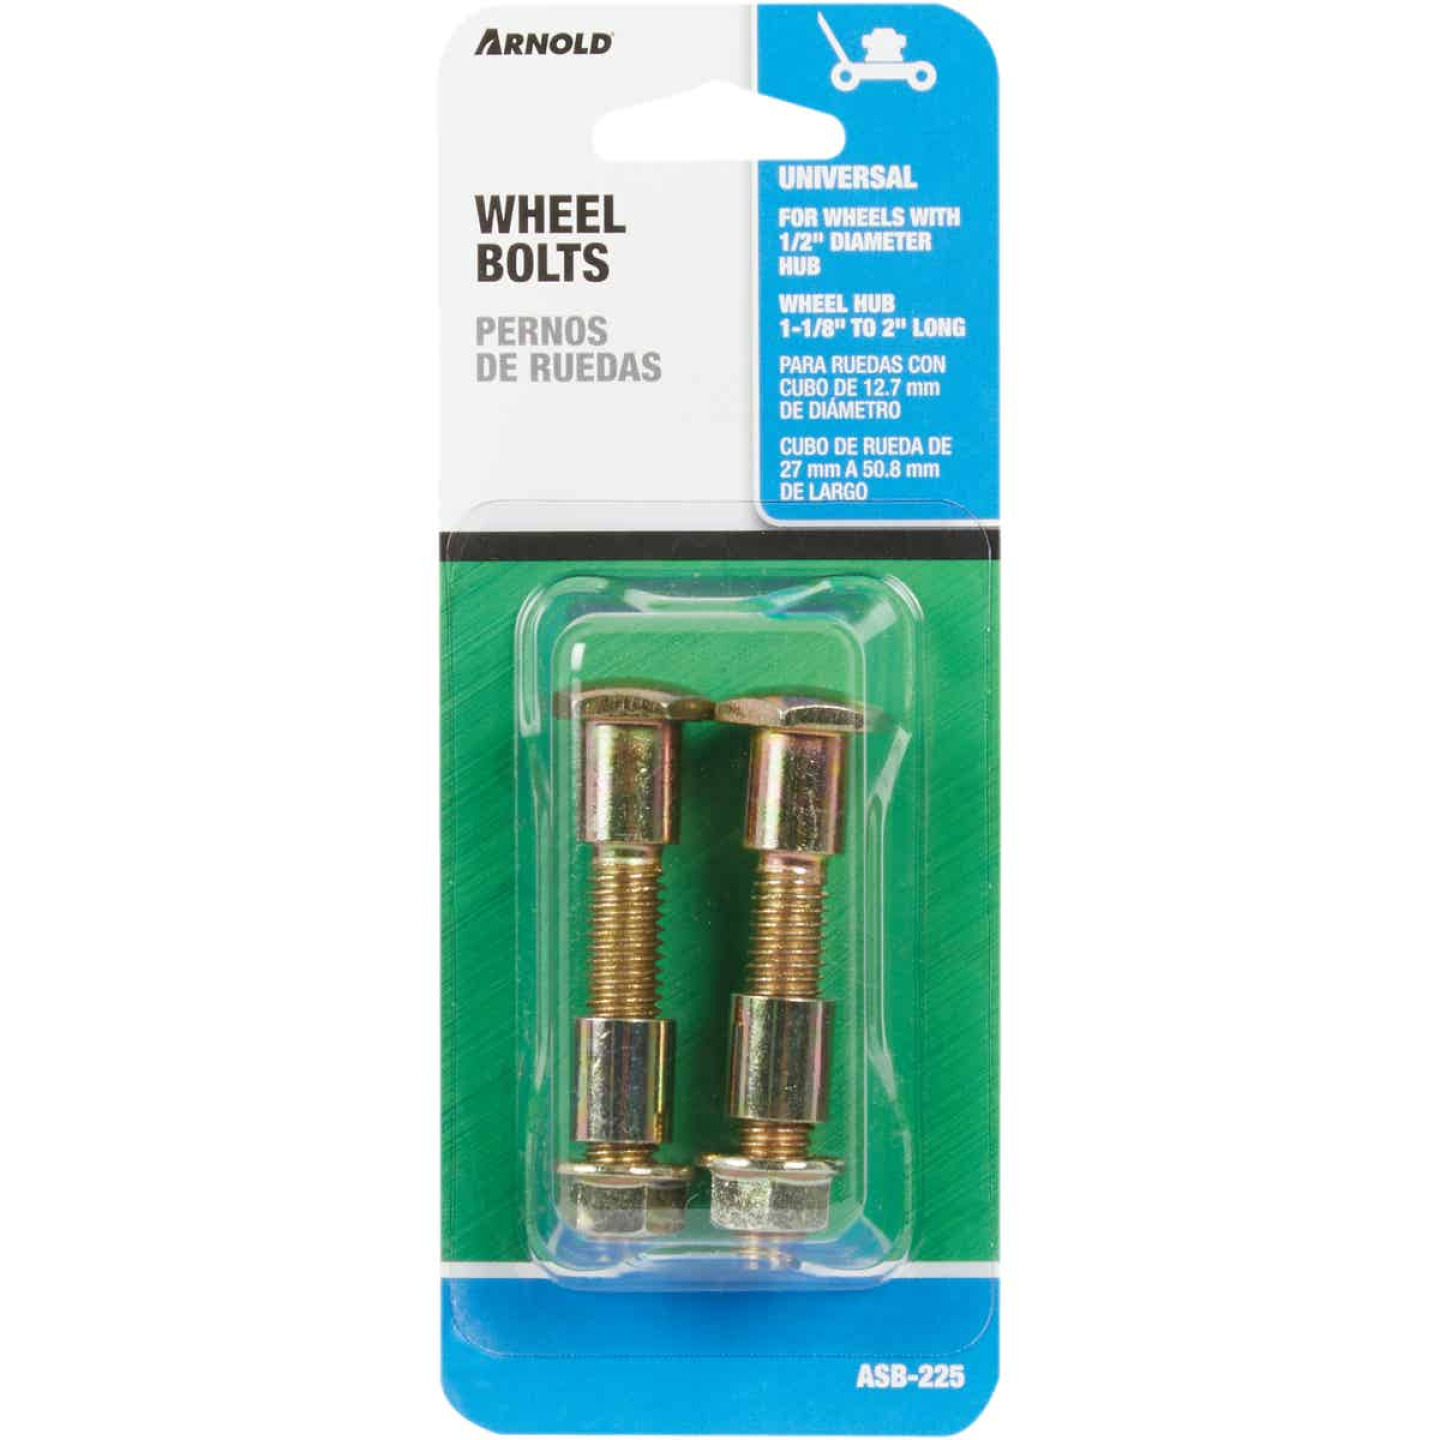 Arnold Wheel Bolts (2 Count) Image 2